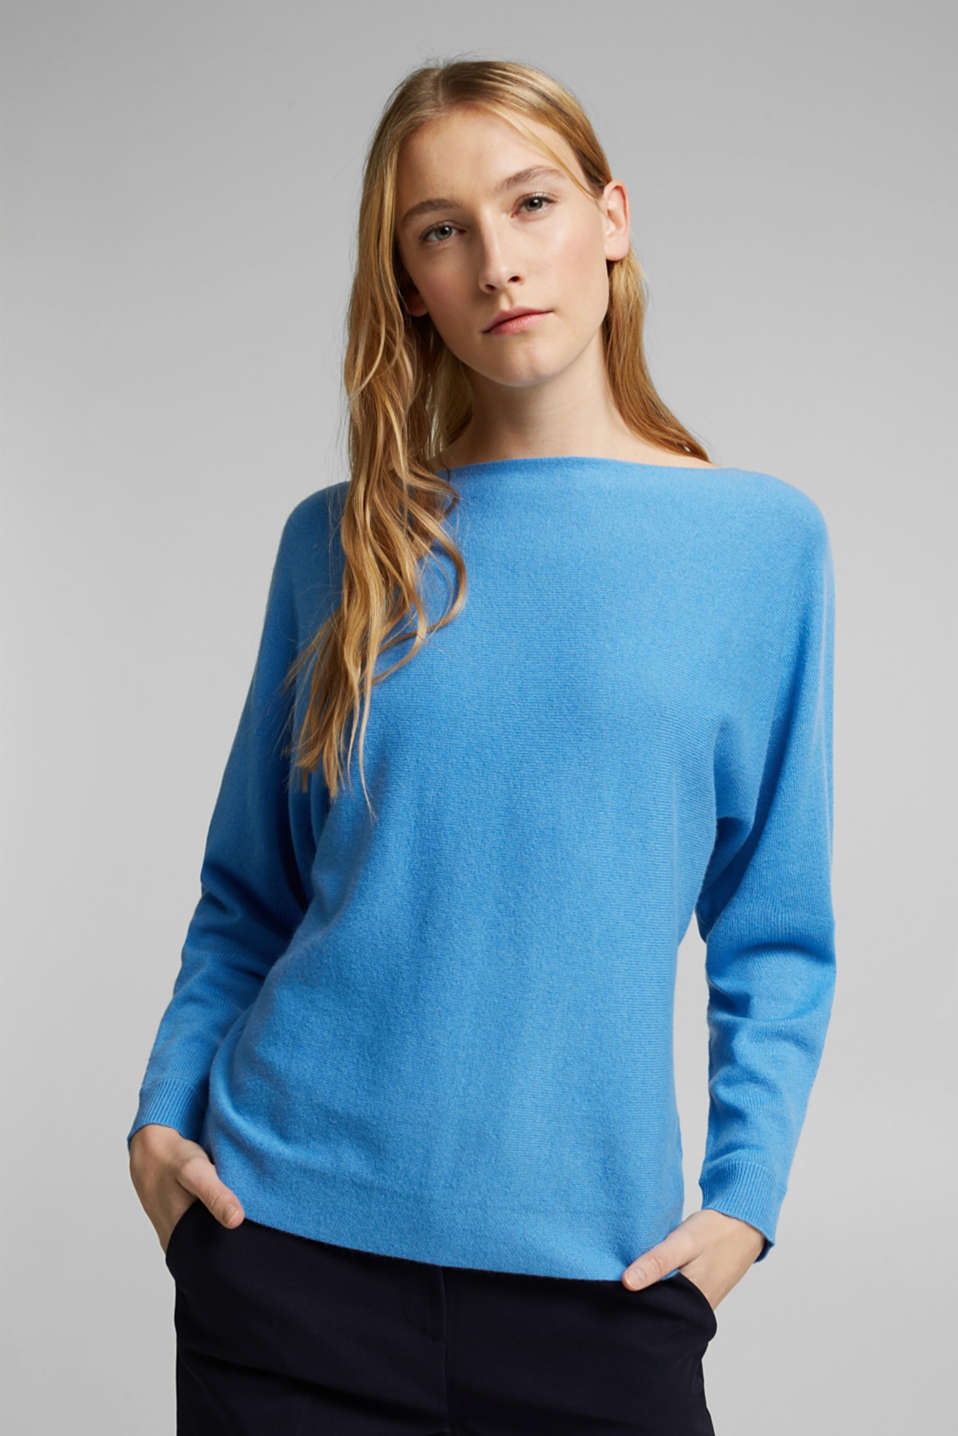 Esprit - Made of 100% cashmere: jumper with batwing sleeves